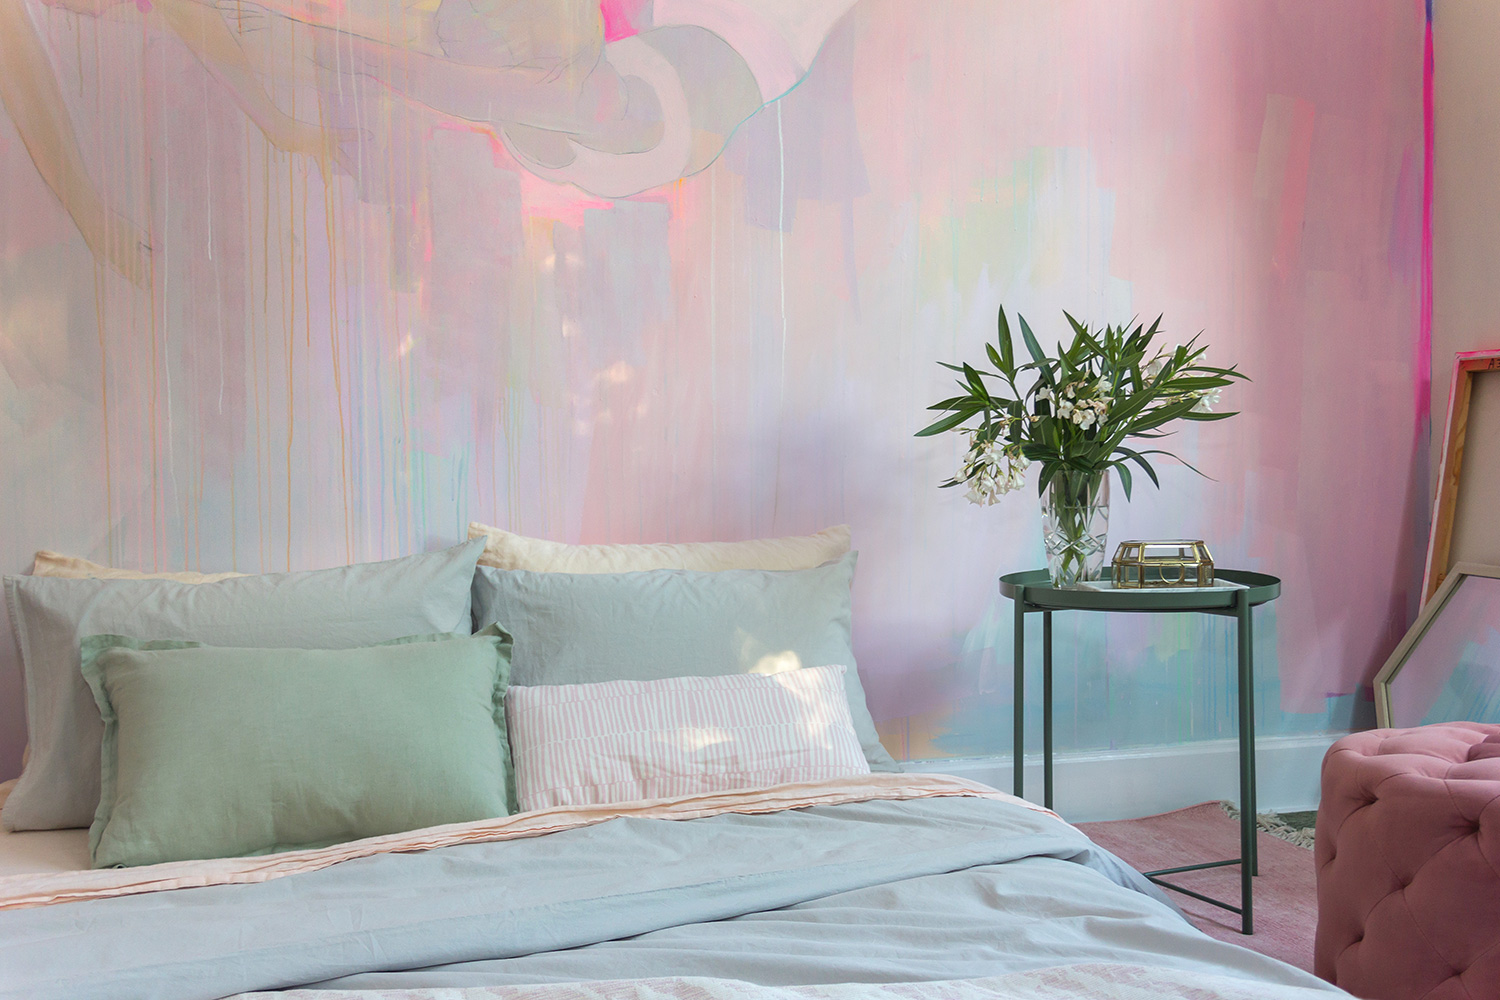 Romantic pink bedroom featuring a unique hand painted mural of two trapeze artists. The bedroom is styled with pastel bedding and flowers, with sunlight casting pretty patterns on the wall.